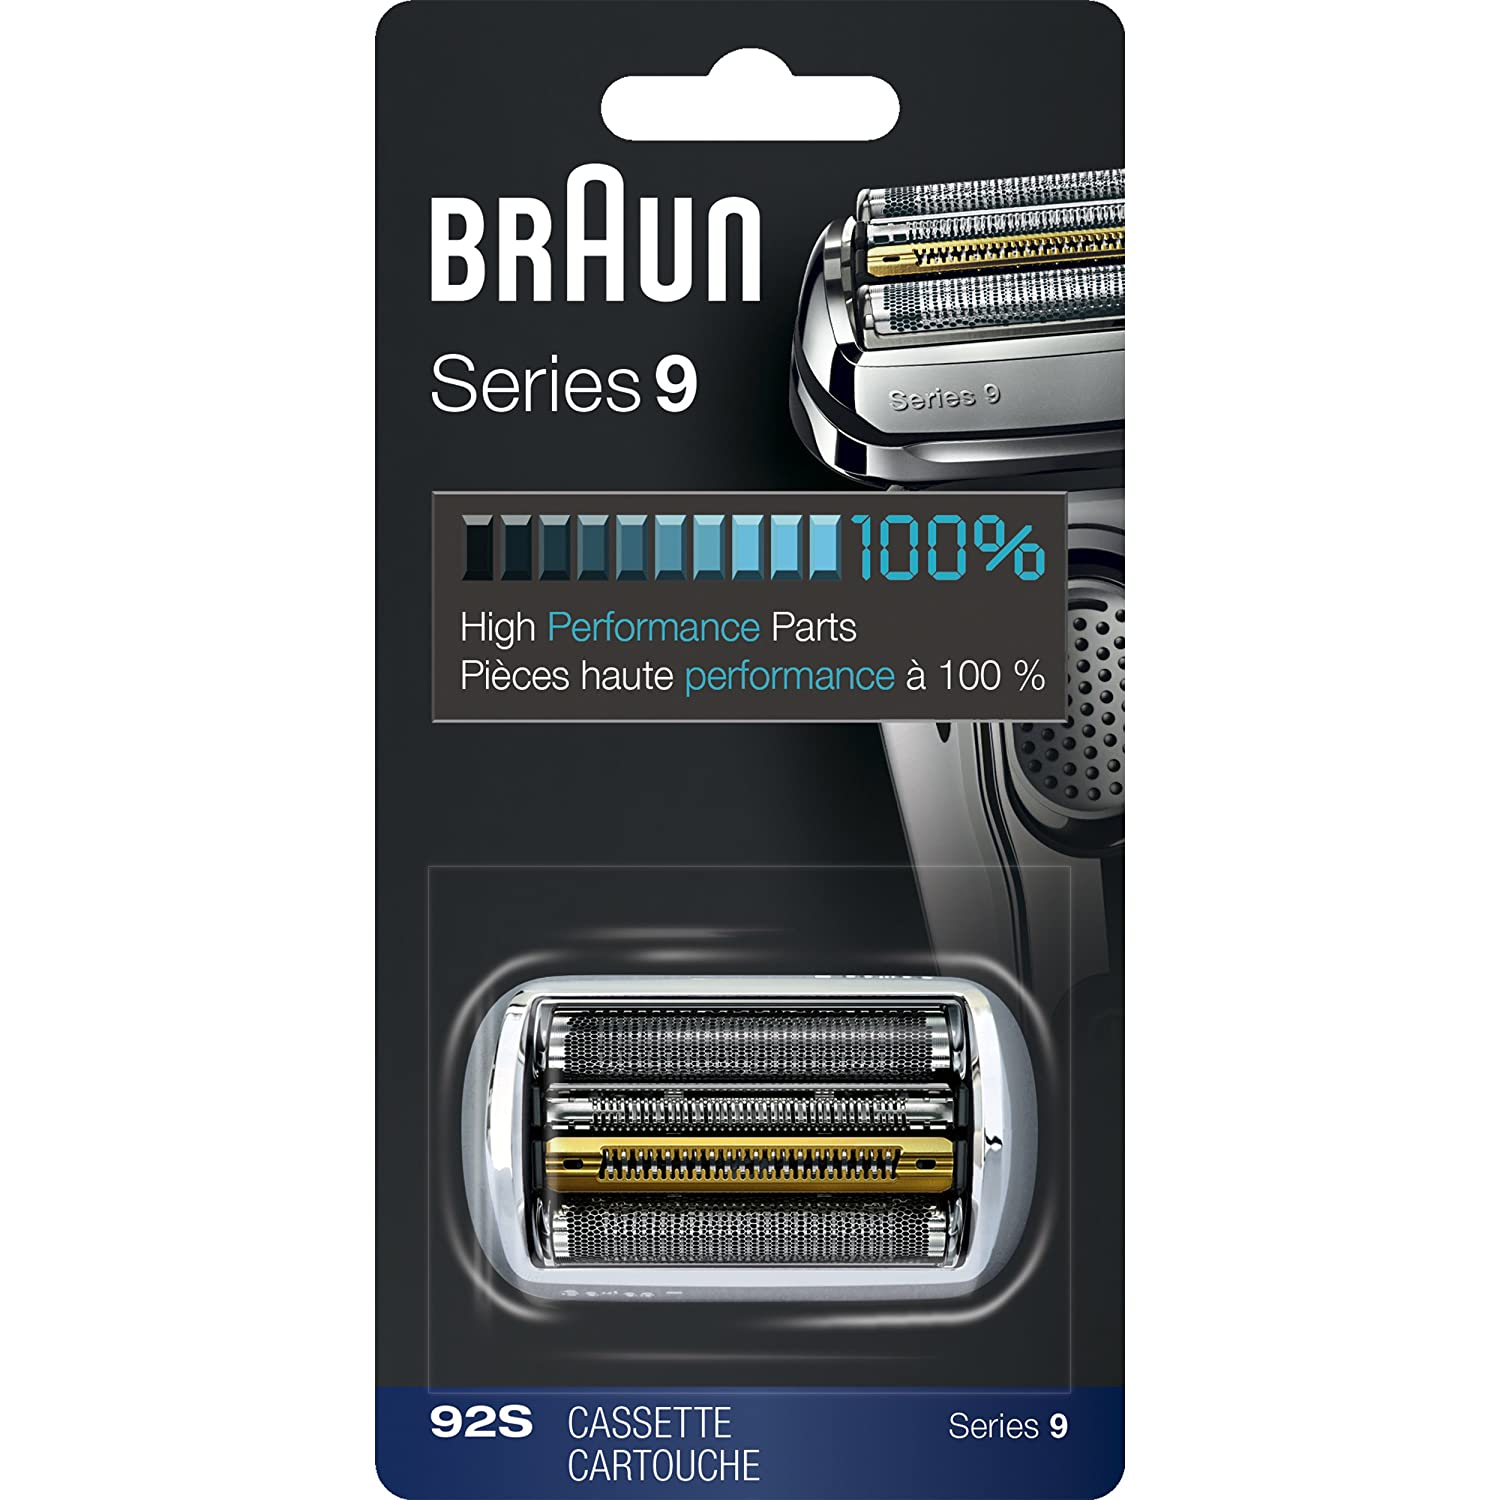 2bb37eb257fbc4 Amazon.com: Braun Series 9 92S Foil & Cutter Replacement Head, Compatible  with Models 9090cc, 9093s, 9290cc, 9293s, 9295cc: Beauty